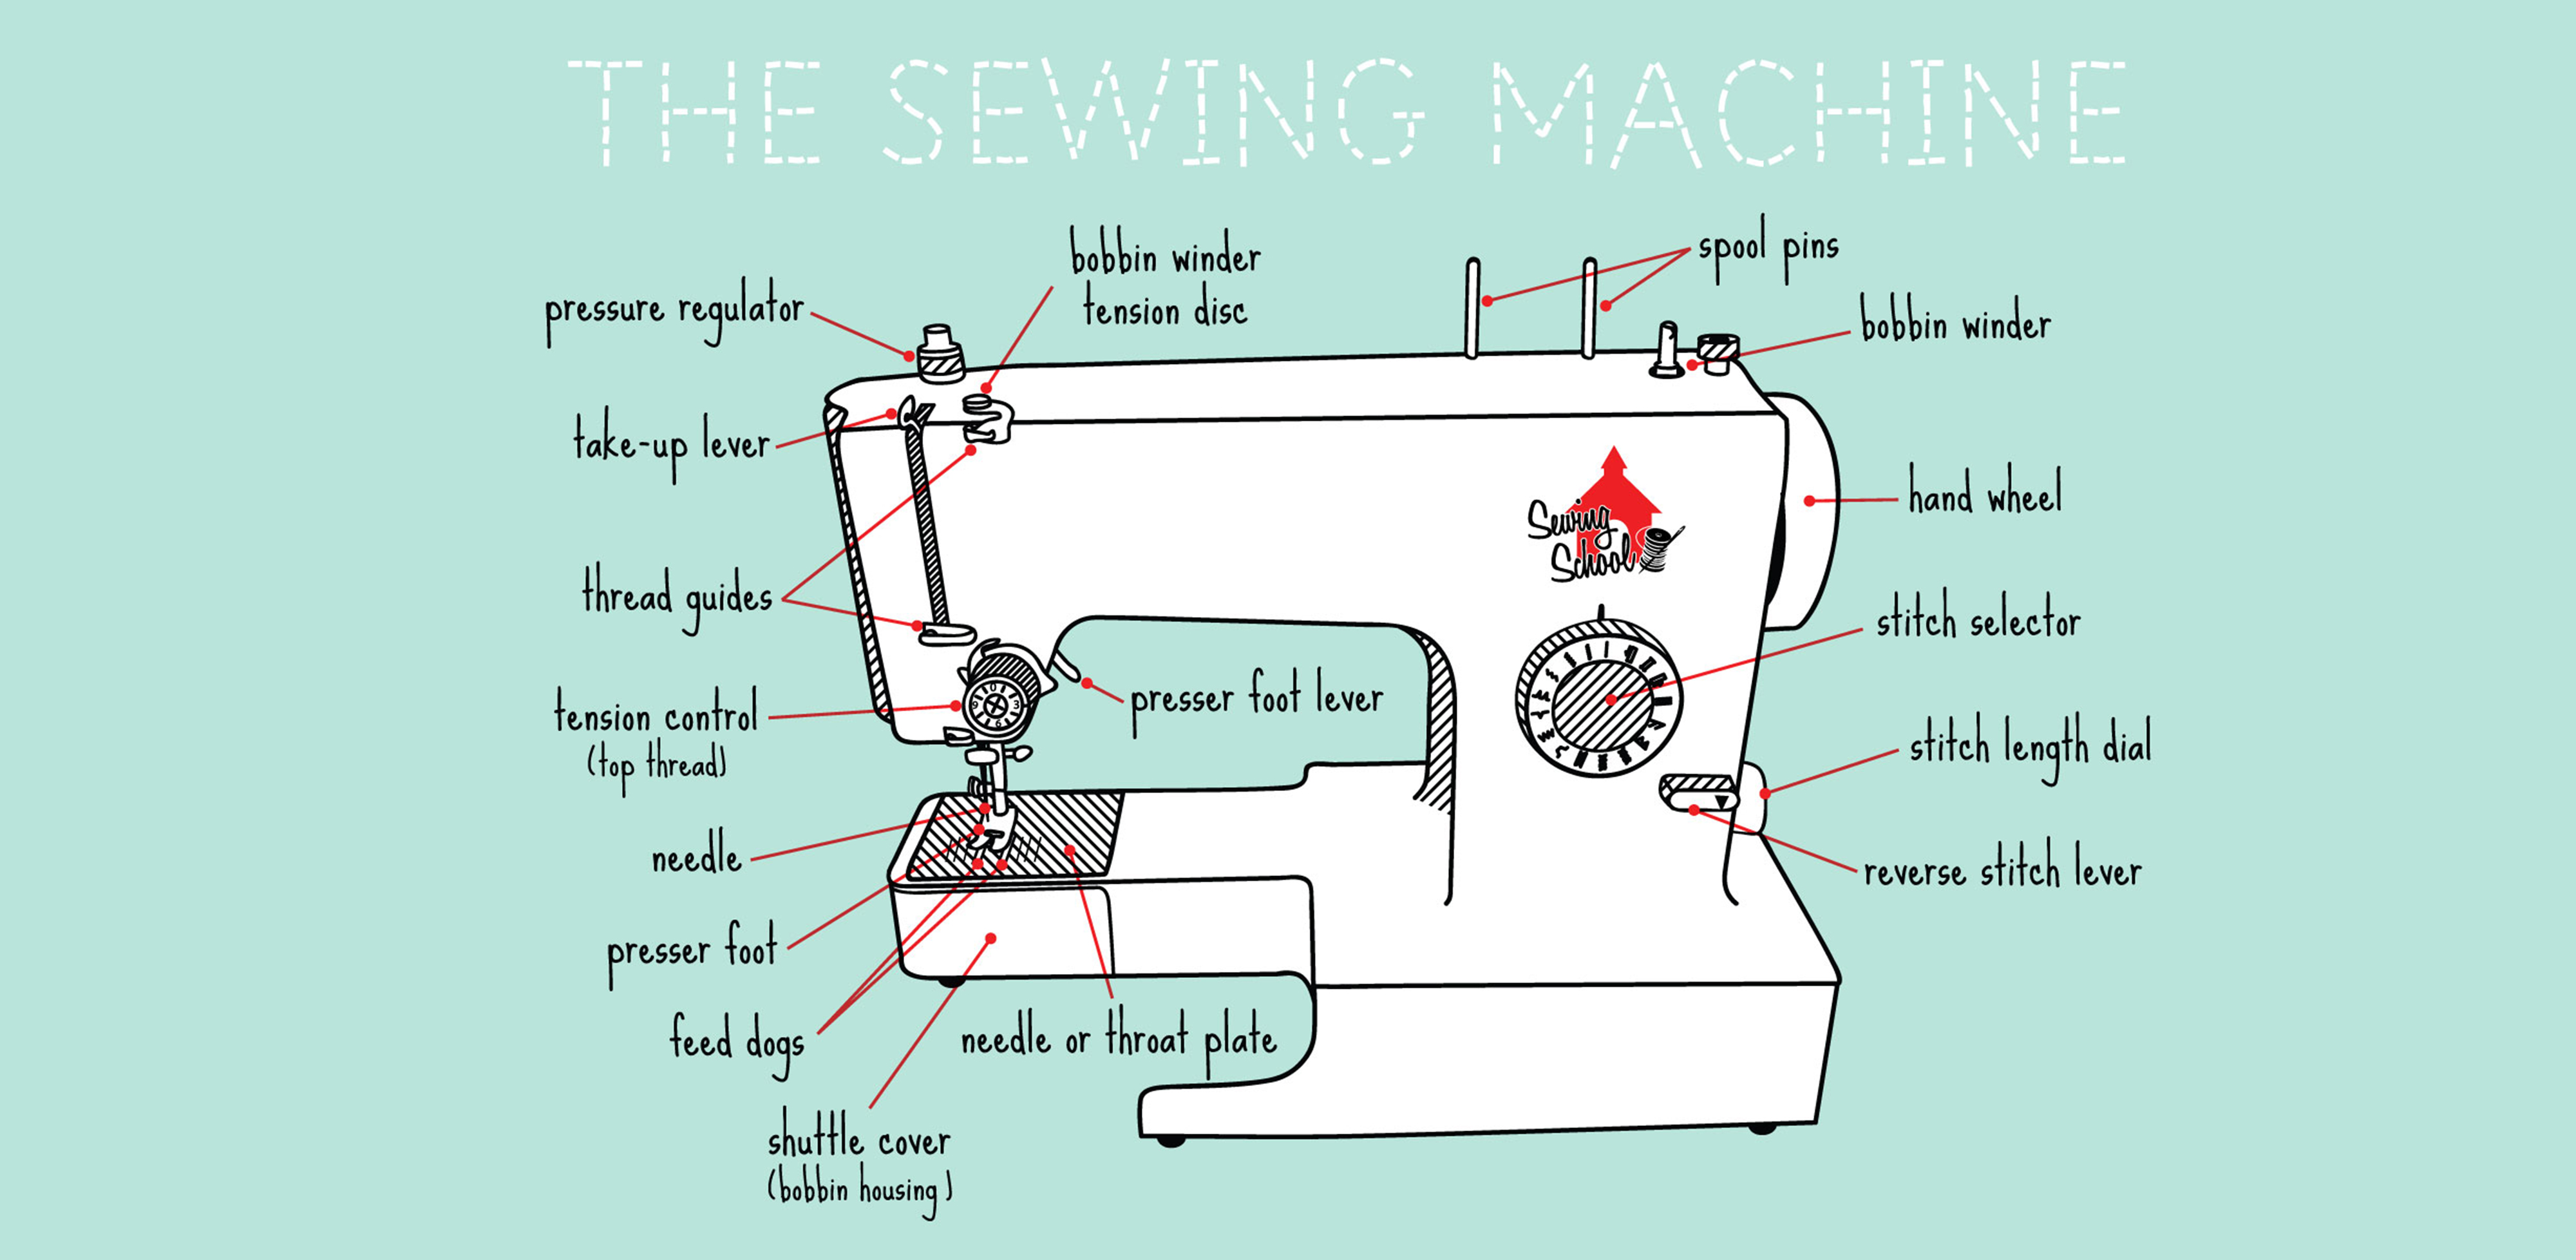 basic sewing machine diagram basic photography diagram Split Air Conditioner Wiring Diagram 110 Volt AC Wiring Colors